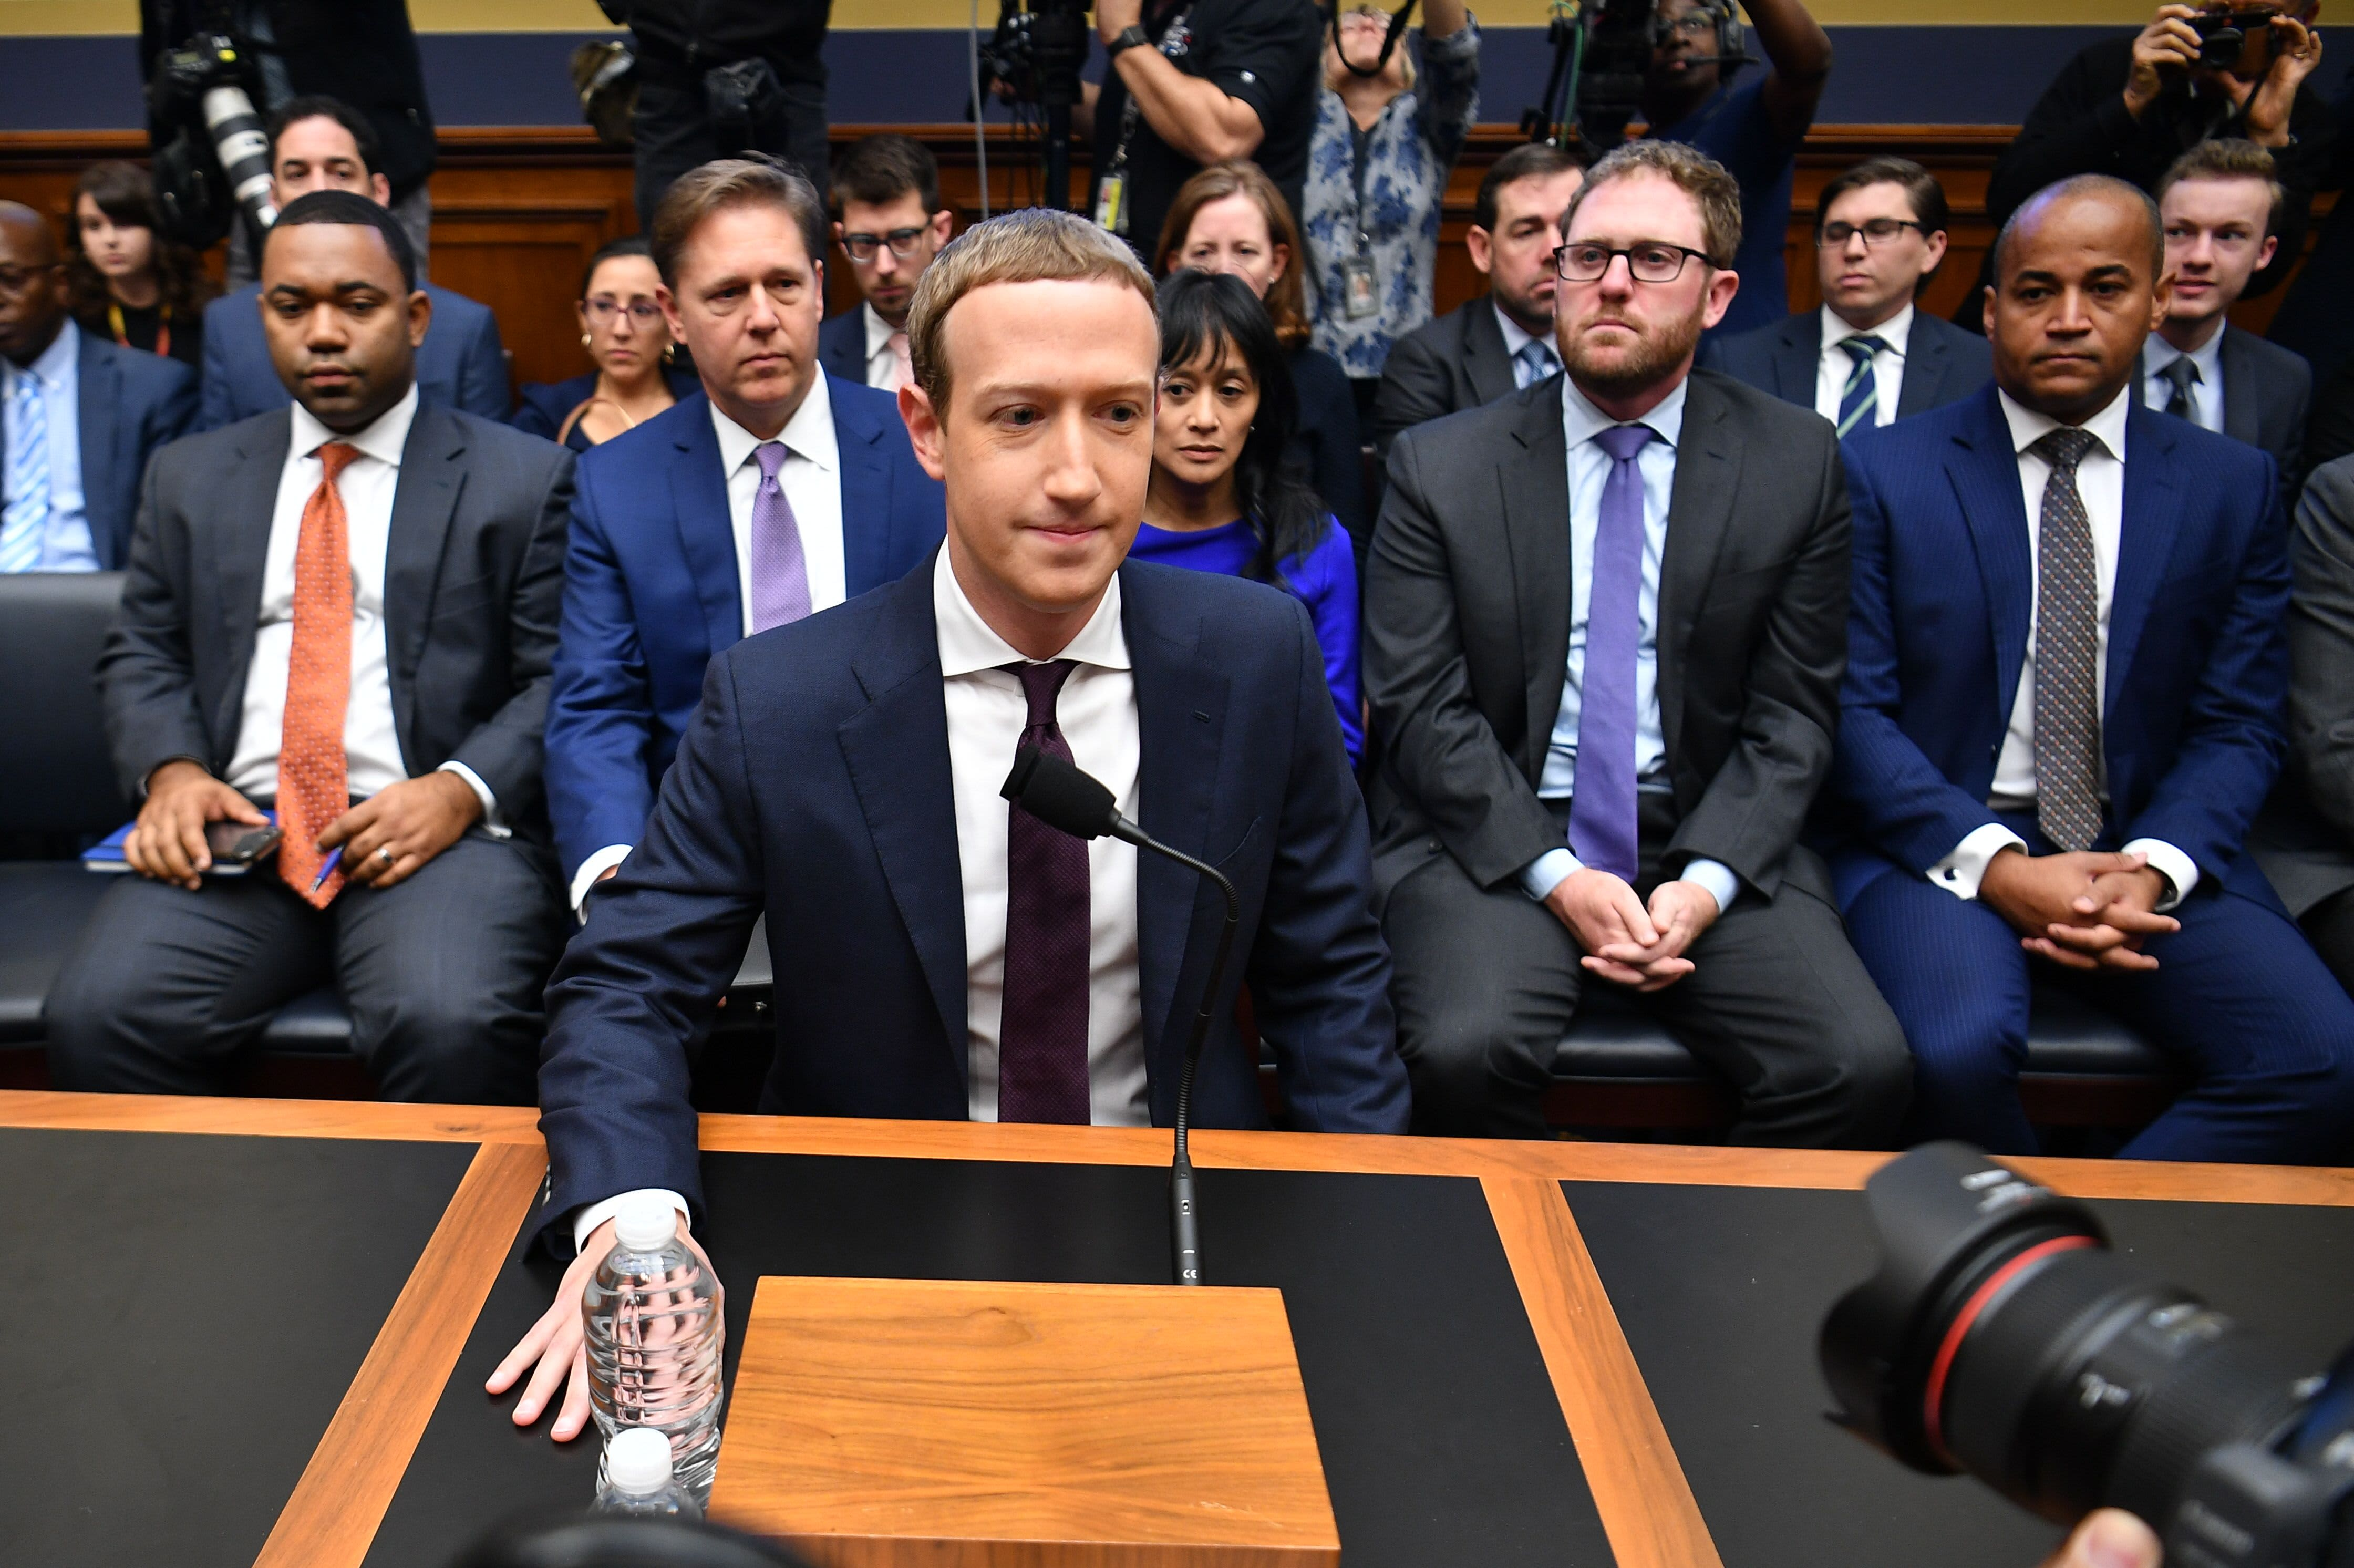 Zuckerberg testimony begins: 'I actually don't know if libra is going to work'